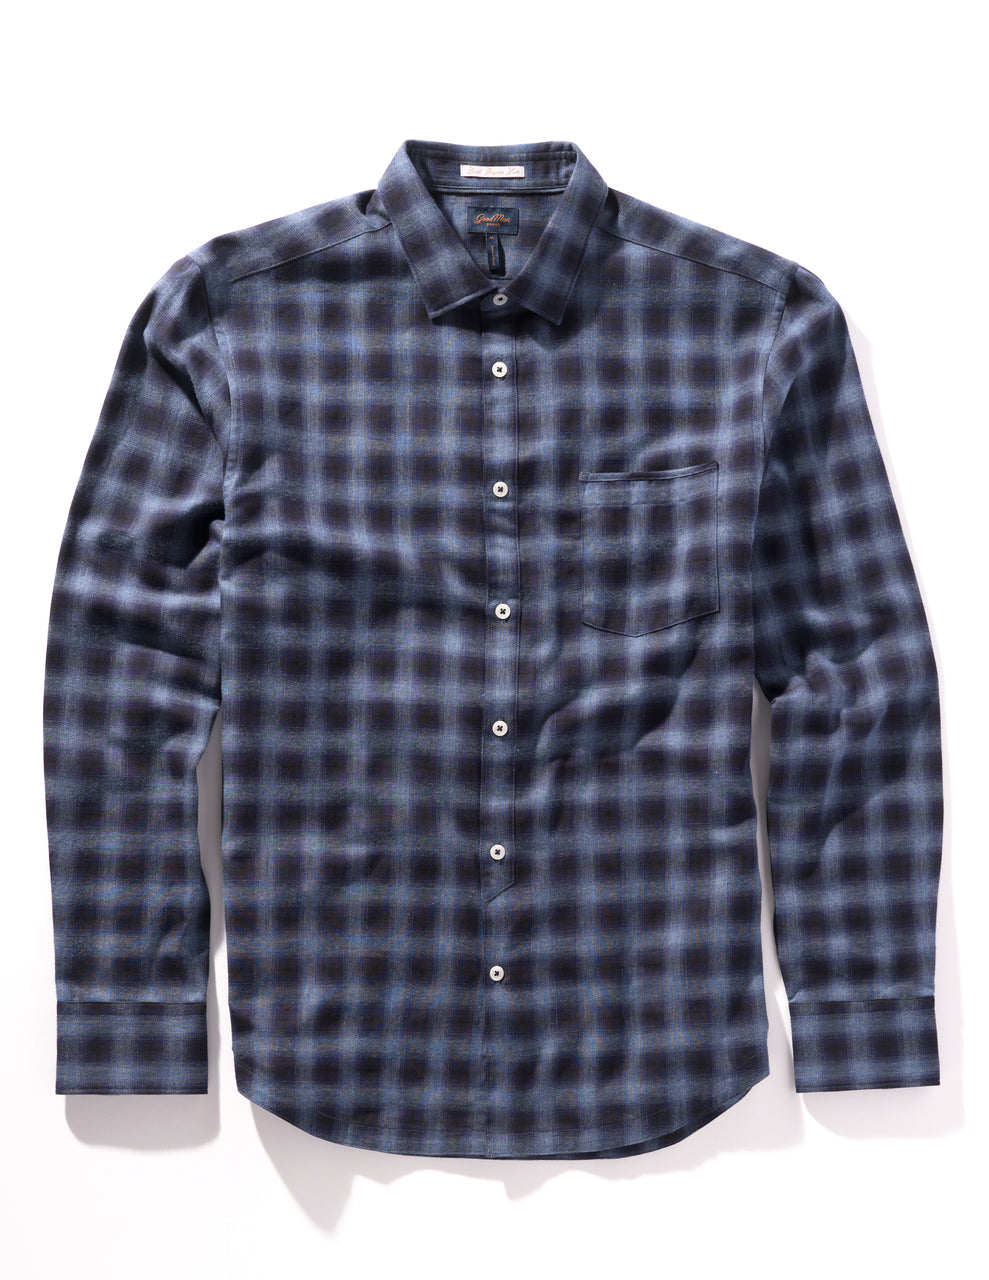 On-Point Plaid Shirt - Navy Century Shadow - Good Man Brand - On-Point Plaid Shirt - Navy Century Shadow